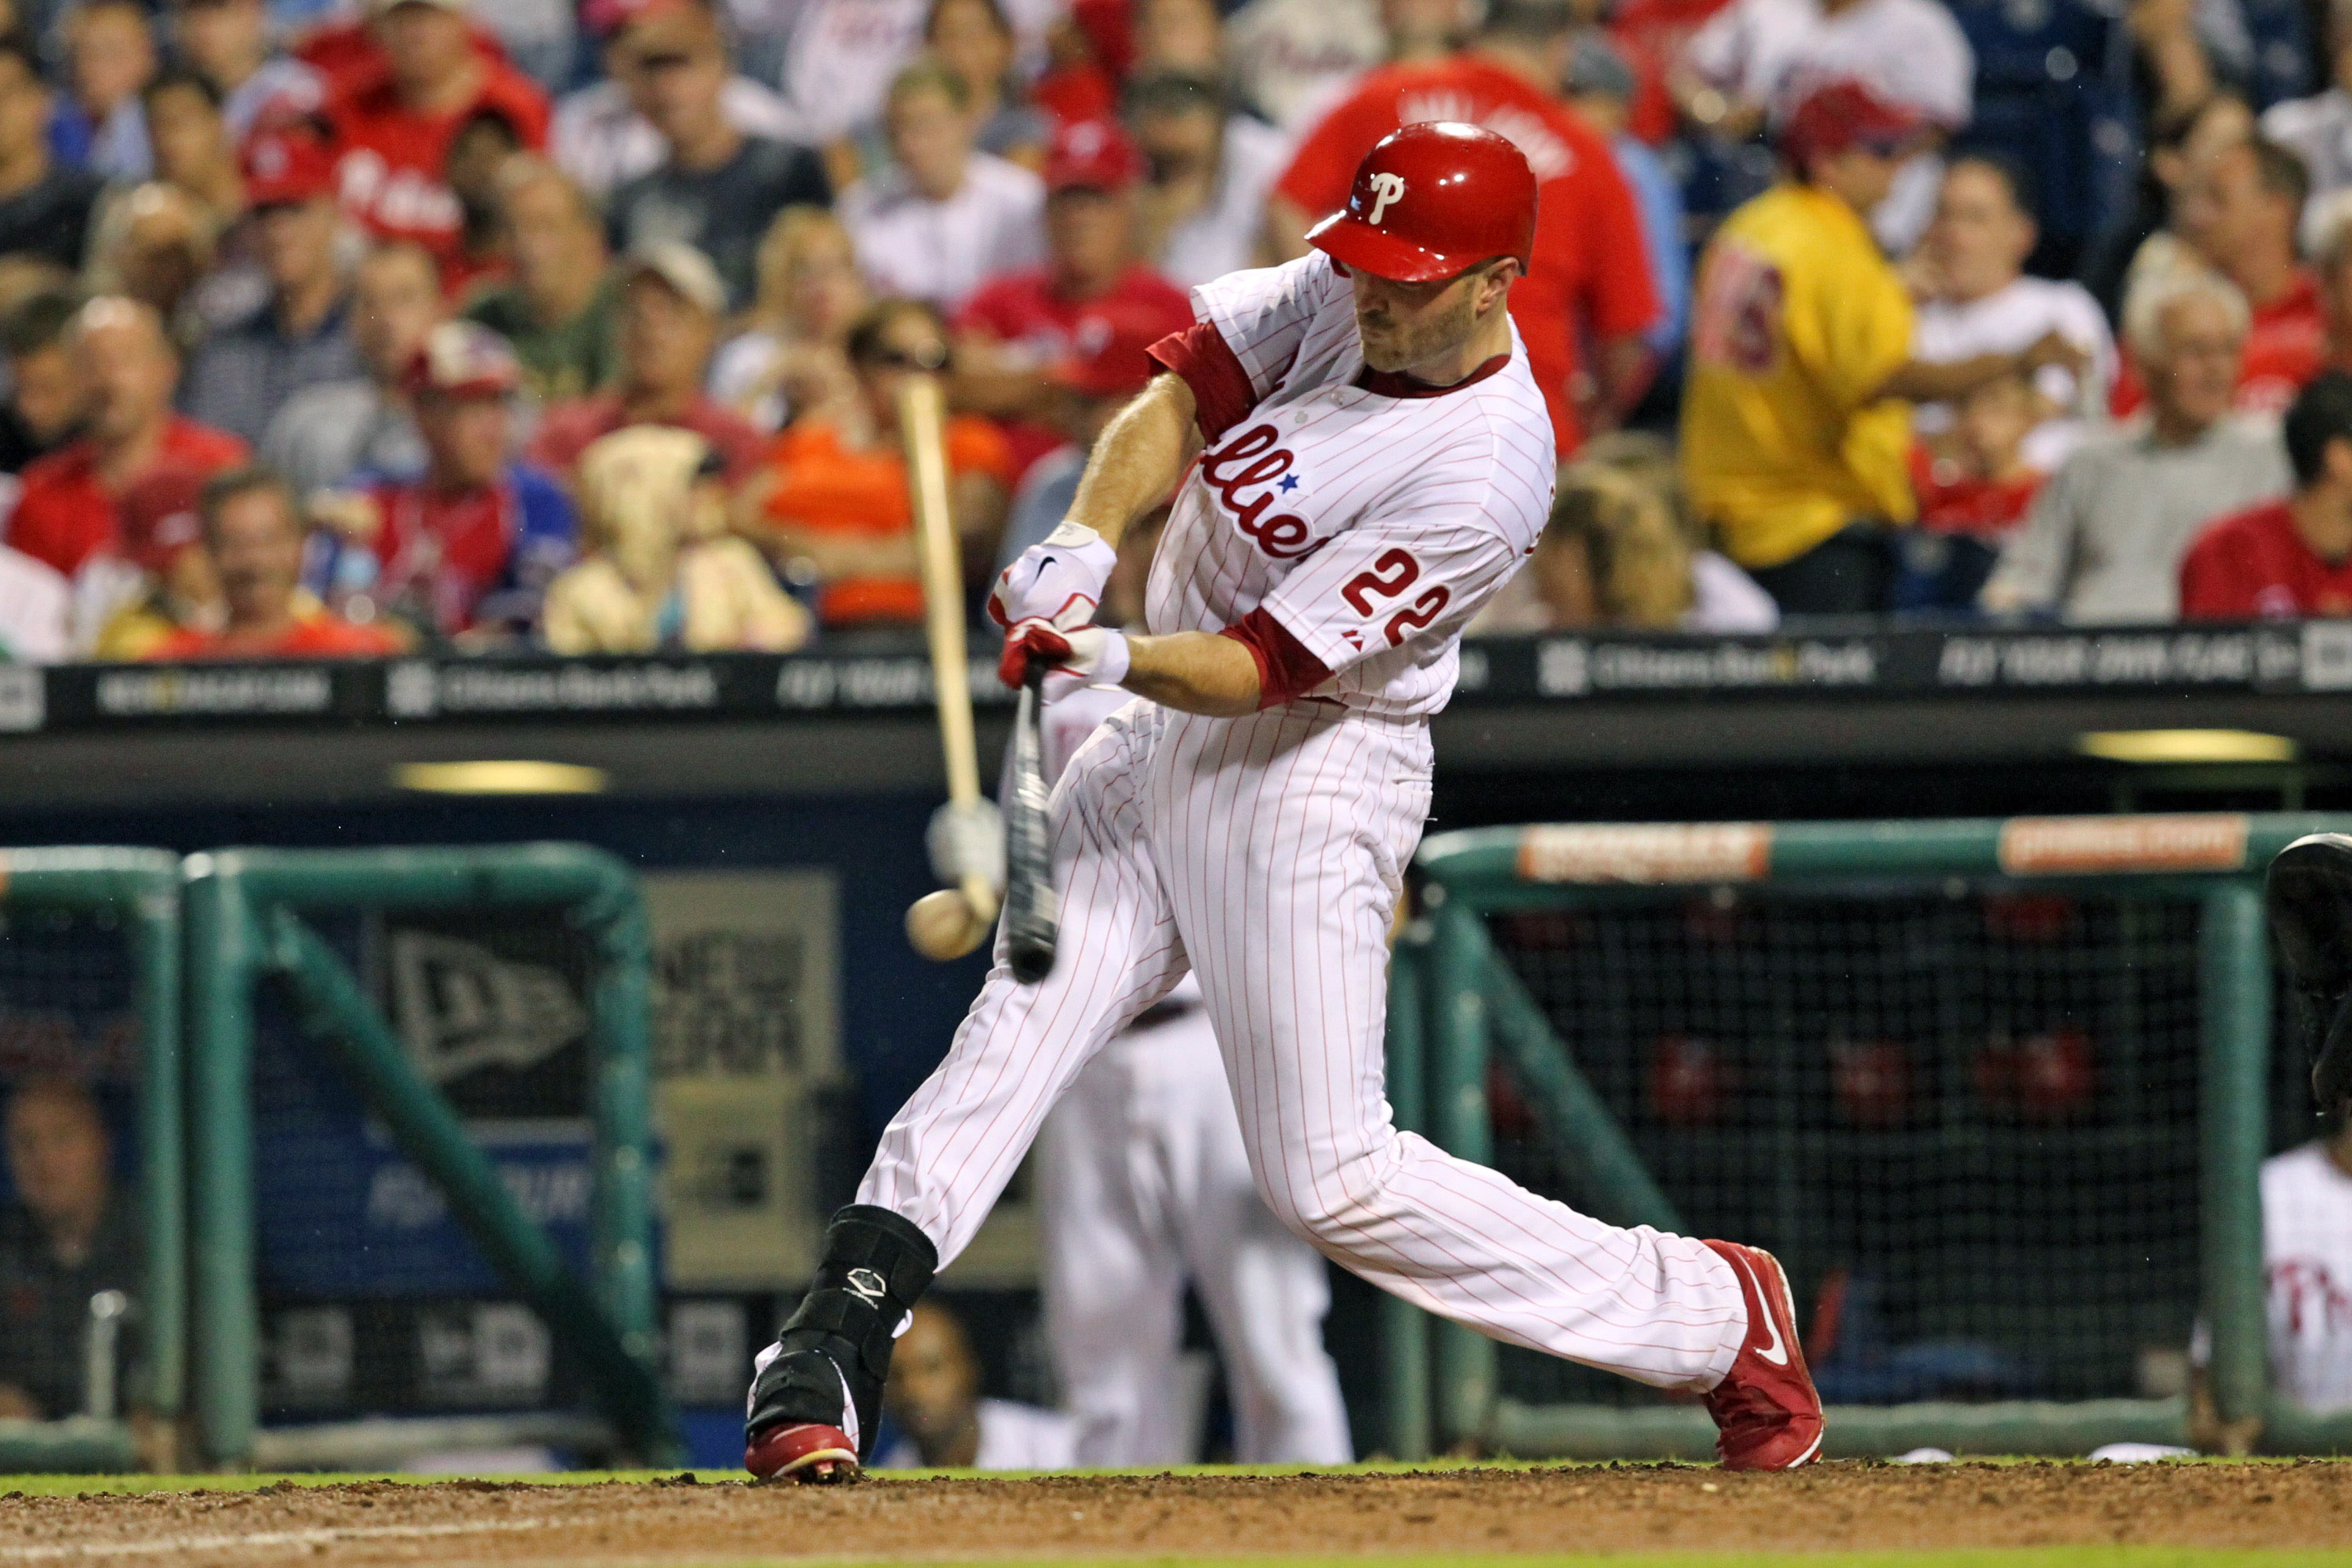 Nate Schierholtz #22 of the Philadelphia Phillies (Photo by Hunter Martin/Getty Images)